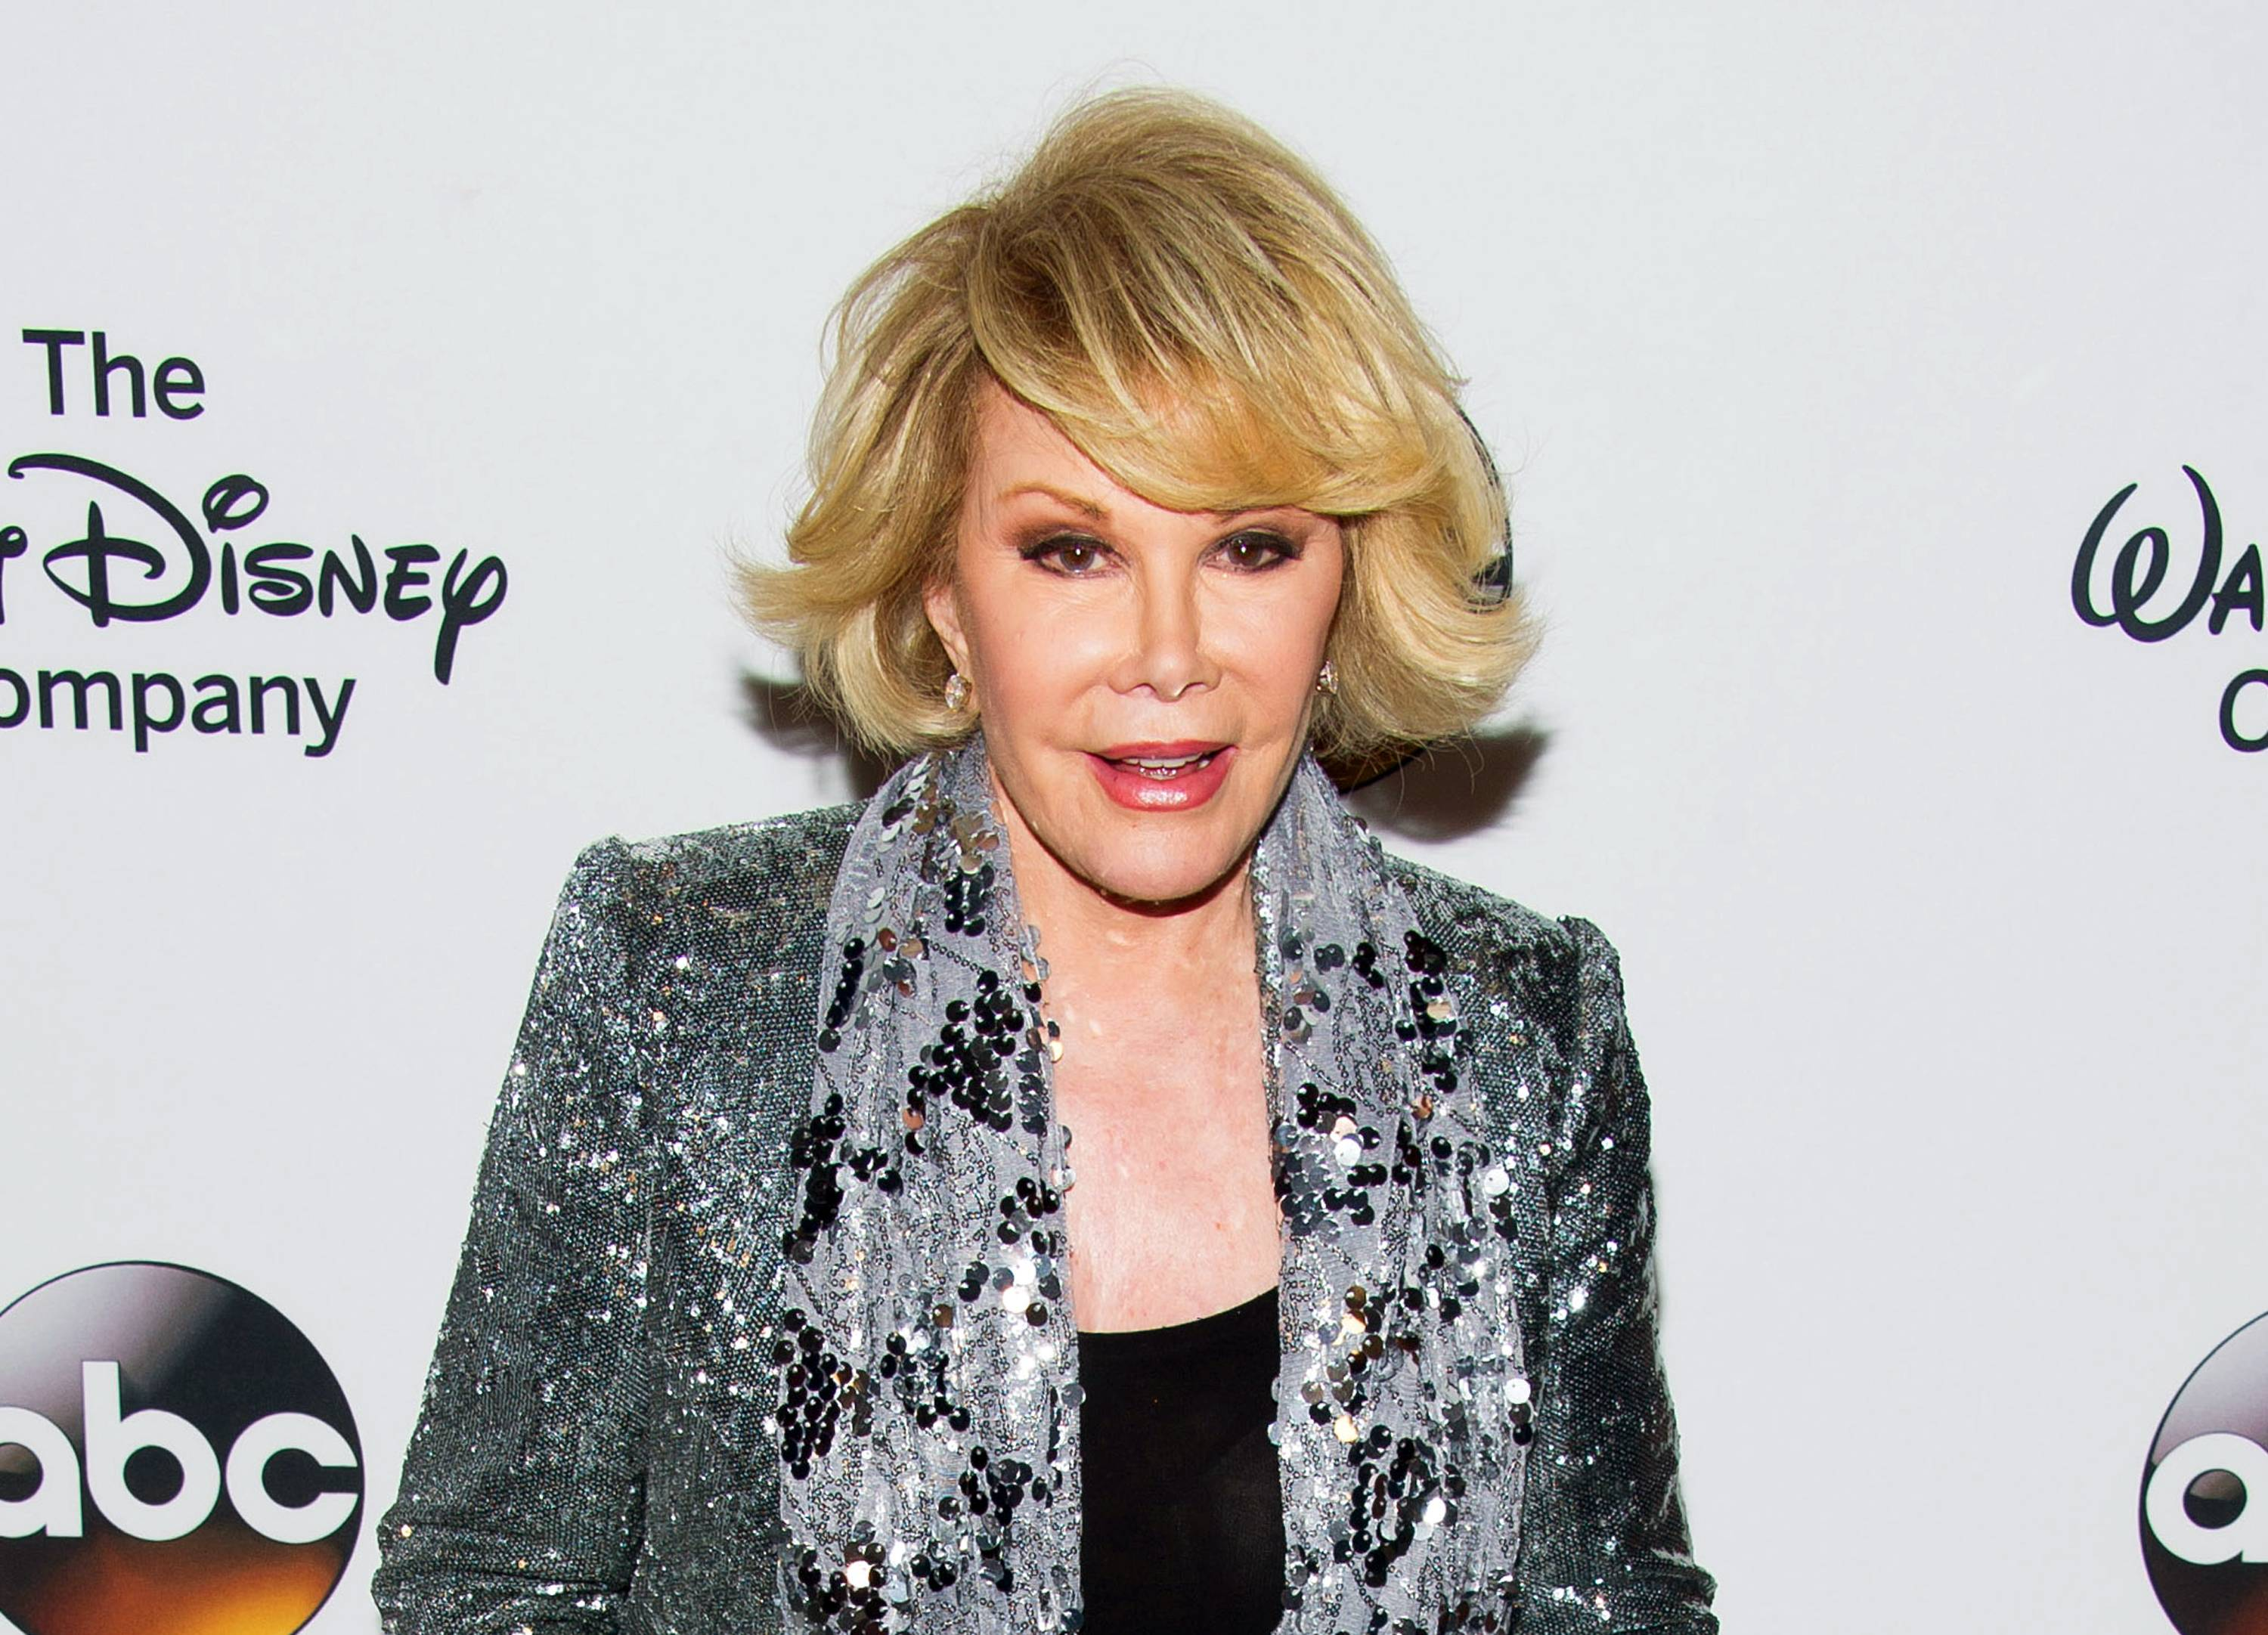 Melissa Rivers announced Thursday that her mother, Joan Rivers, died Thursday in New York. Rivers was hospitalized Aug. 28, after going into cardiac arrest at a doctor's office.